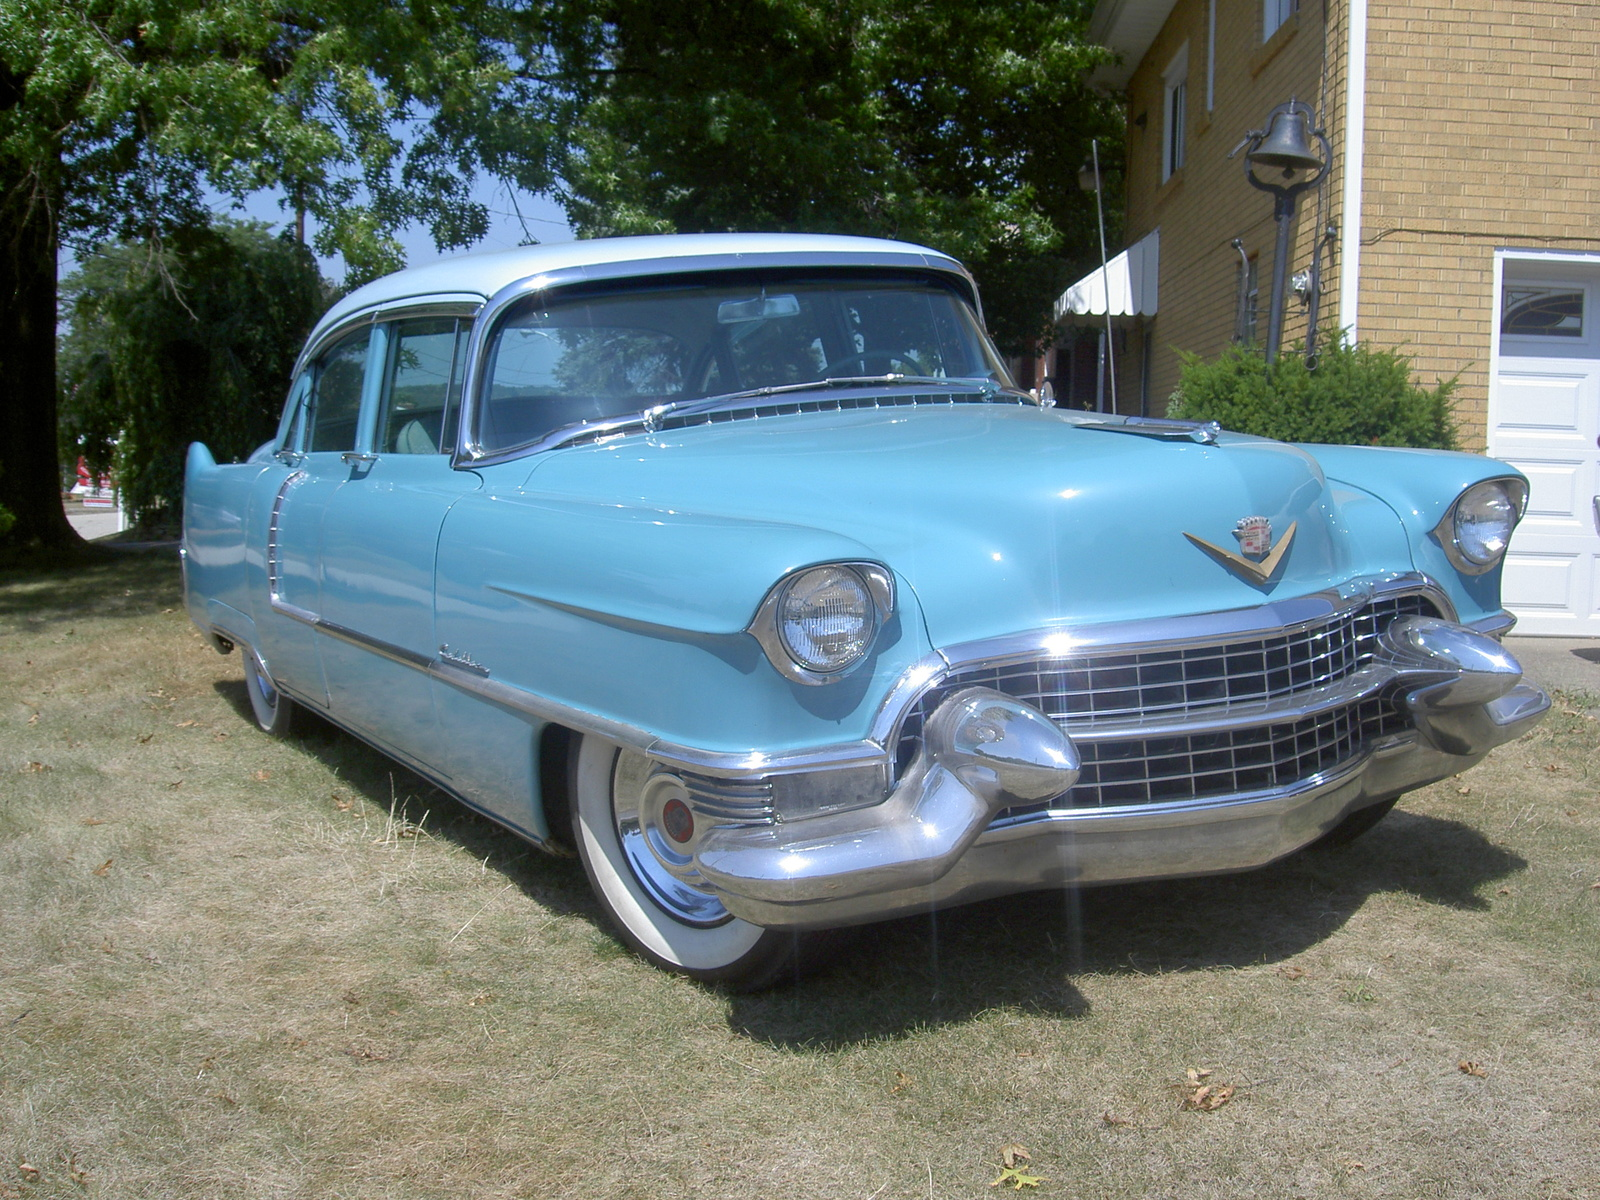 Picture of 1955 Cadillac Fleetwood, exterior